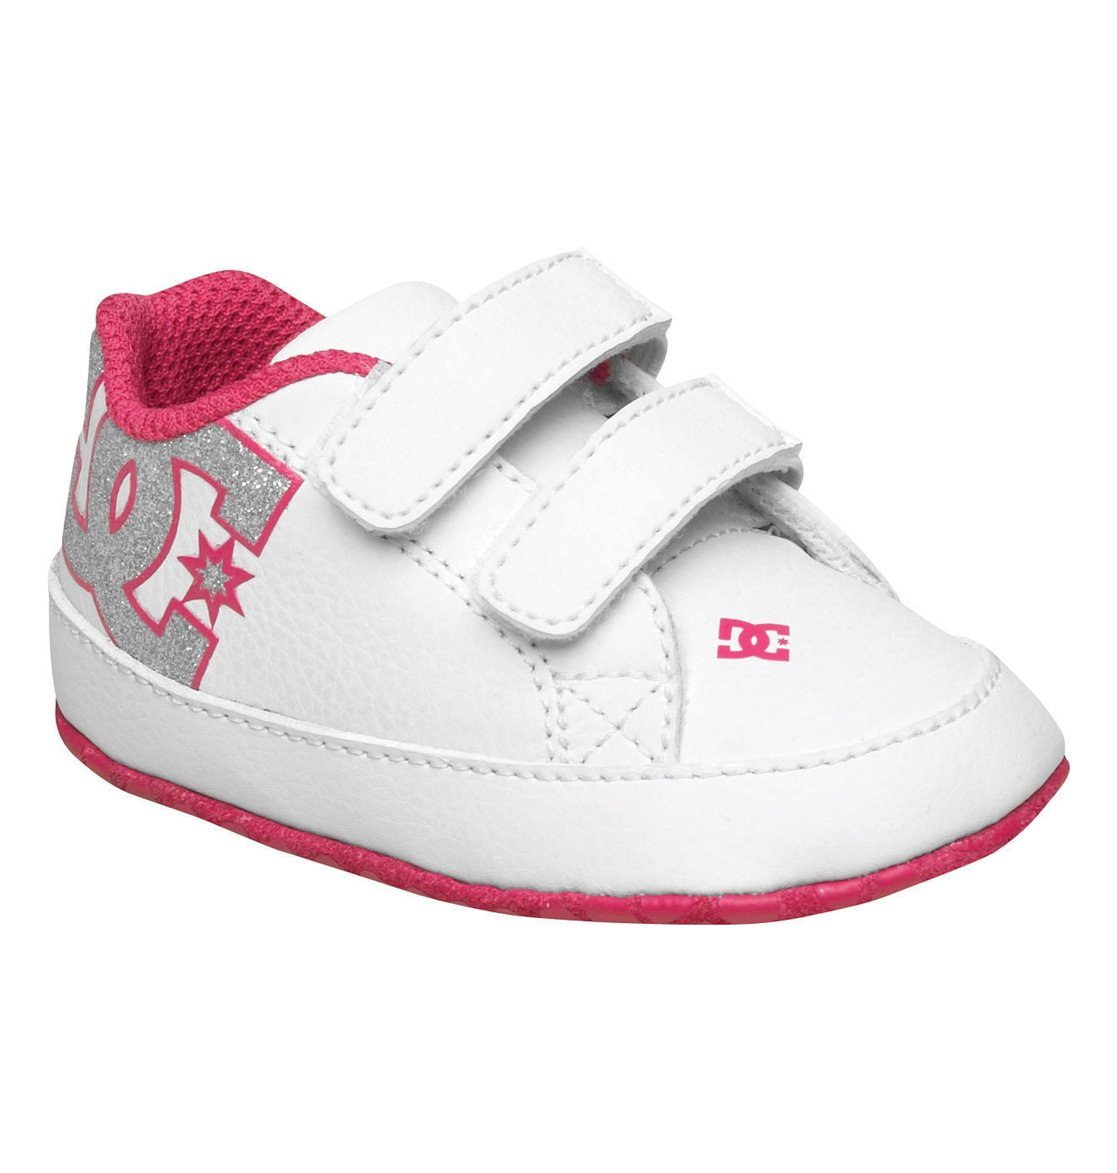 Find great deals on eBay for DC Baby Clothes in Baby and Toddler Shoes. Shop with confidence.